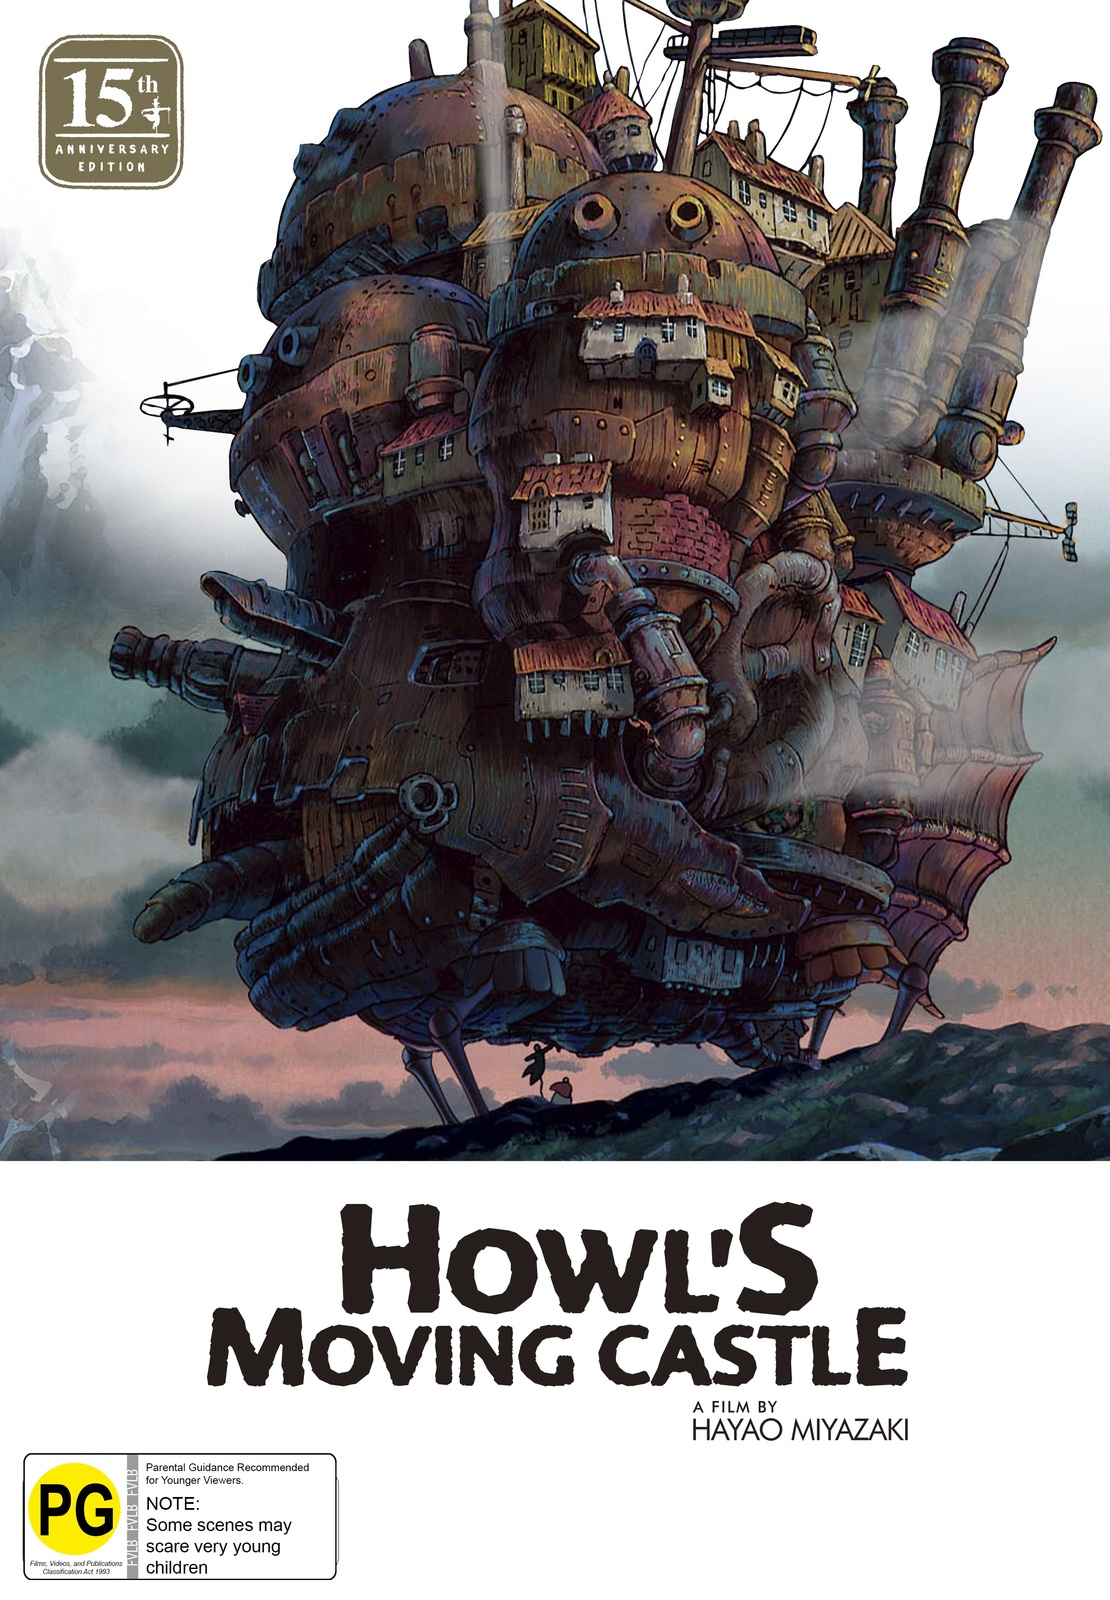 Howl's Moving Castle 15th Anniversary Limited Edition (Blu-ray & DVD Combo With Artbook) on DVD, Blu-ray image